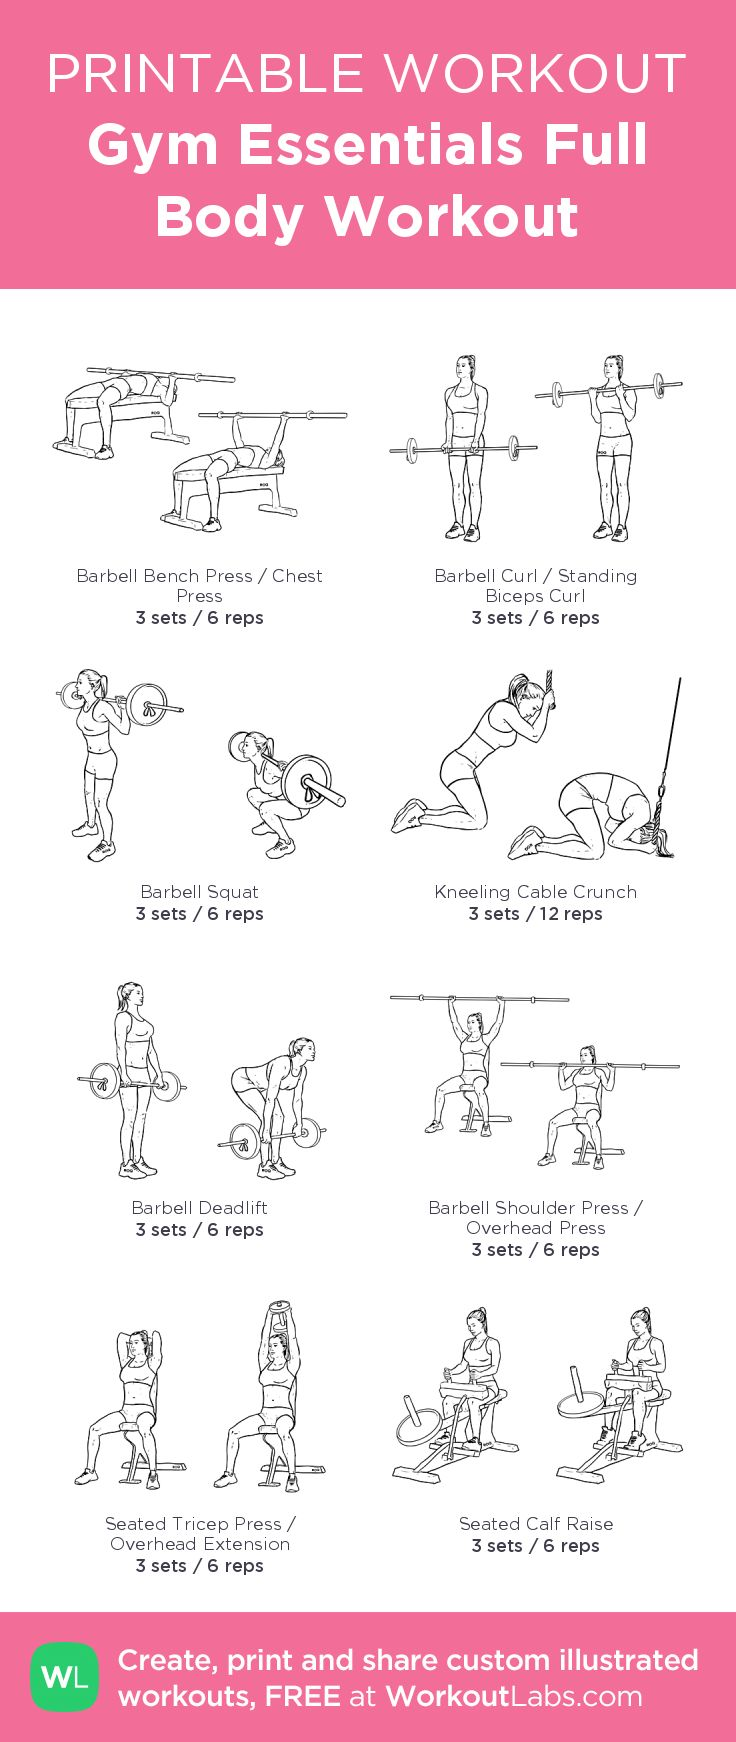 Best images about workout labs on pinterest exercise